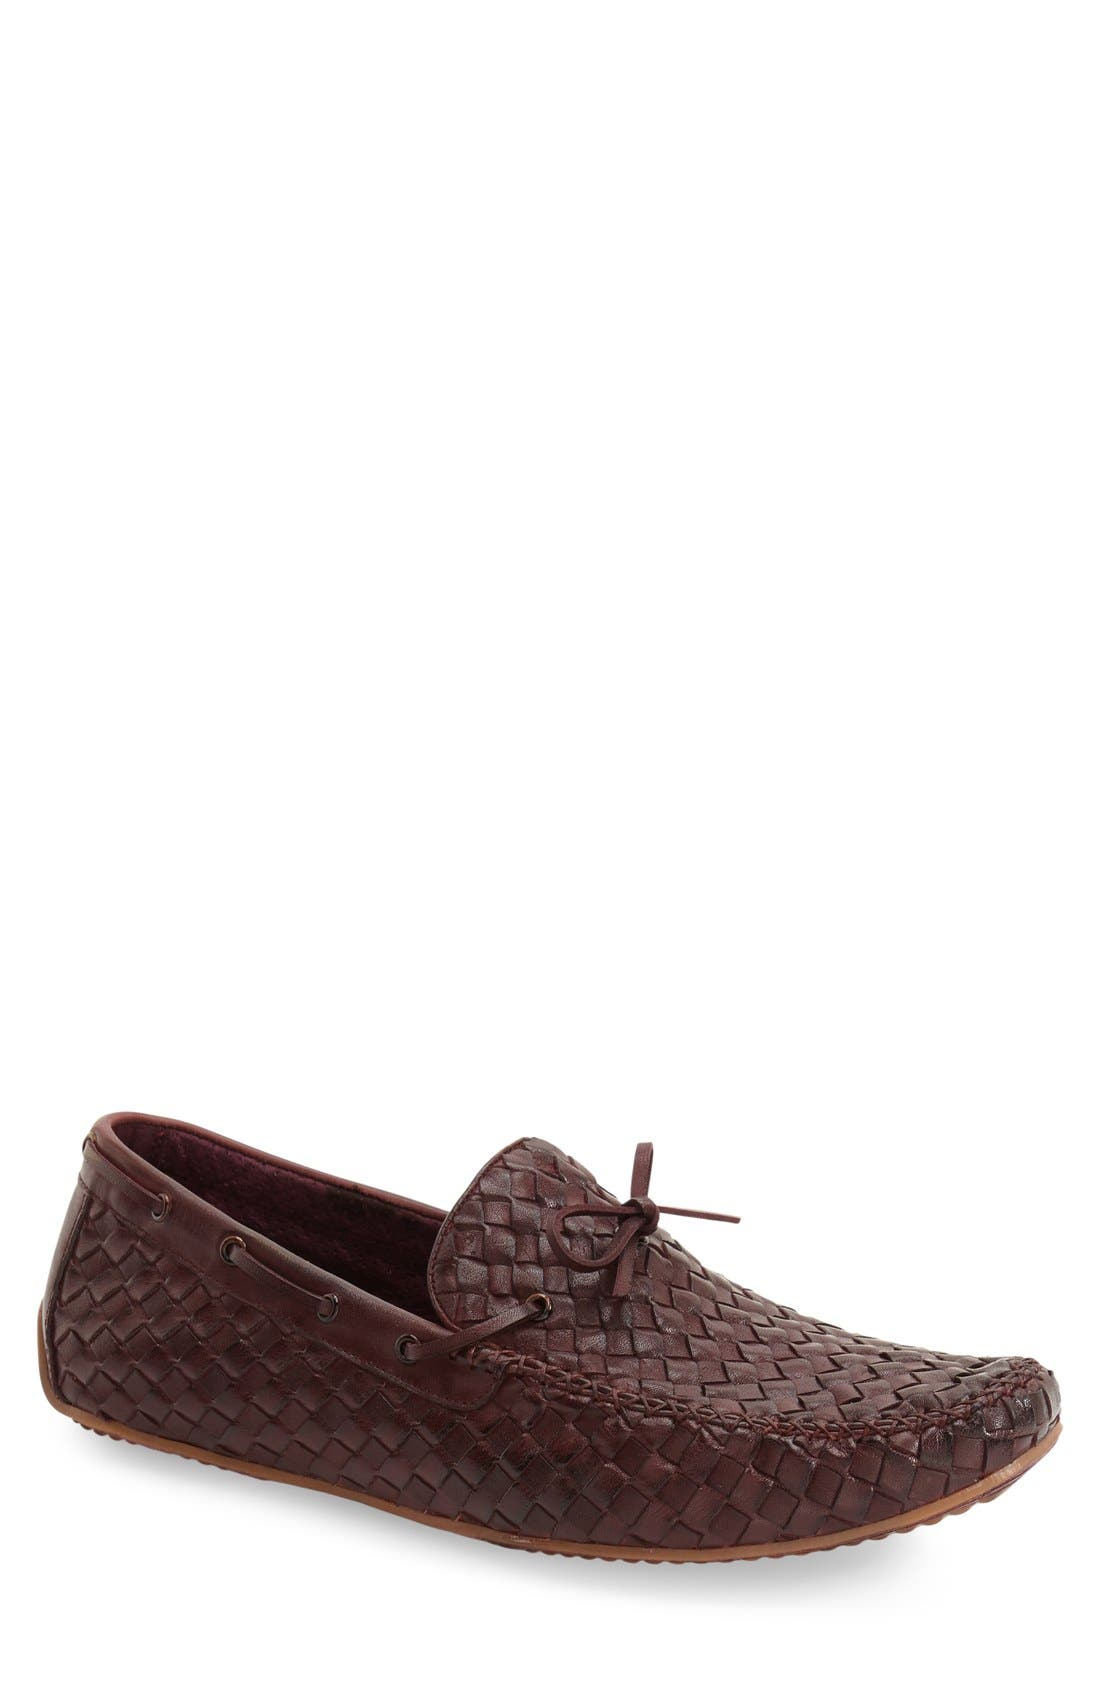 Leather Loafer,                             Main thumbnail 1, color,                             Wine Leather